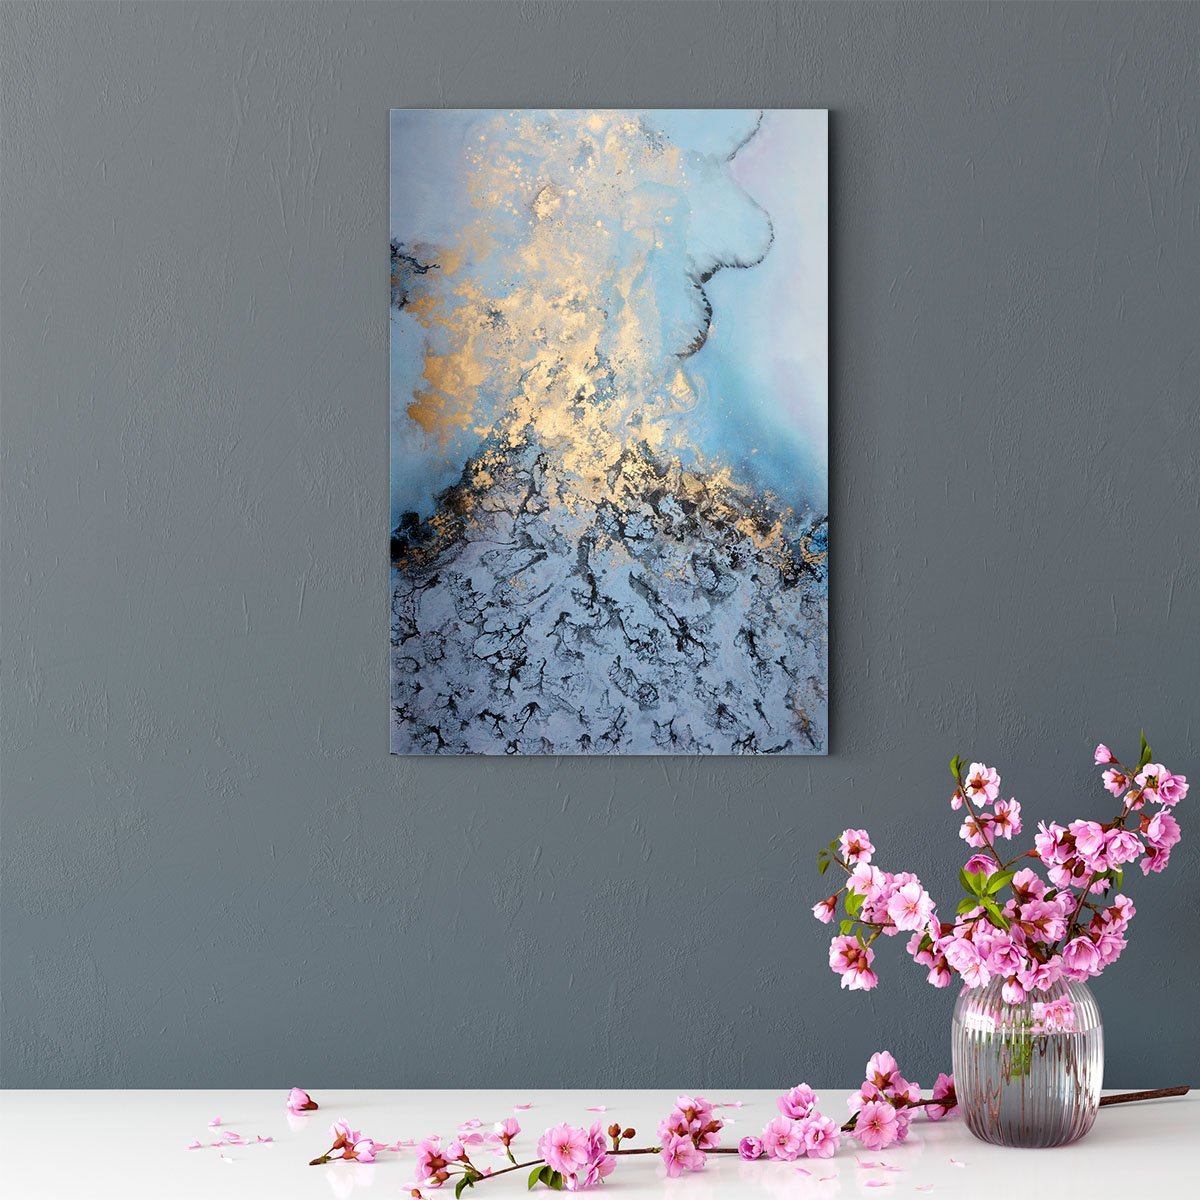 Fascinating color abstract decorative painting 010